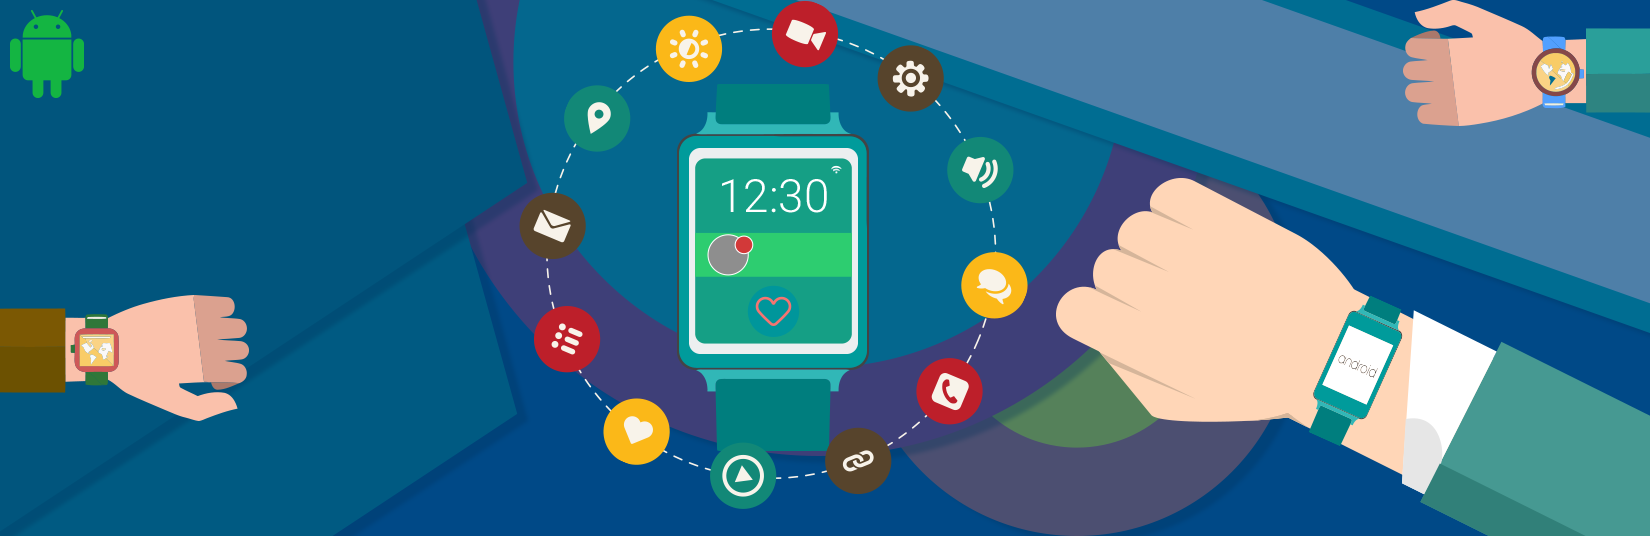 Android-Wearable-App-Development